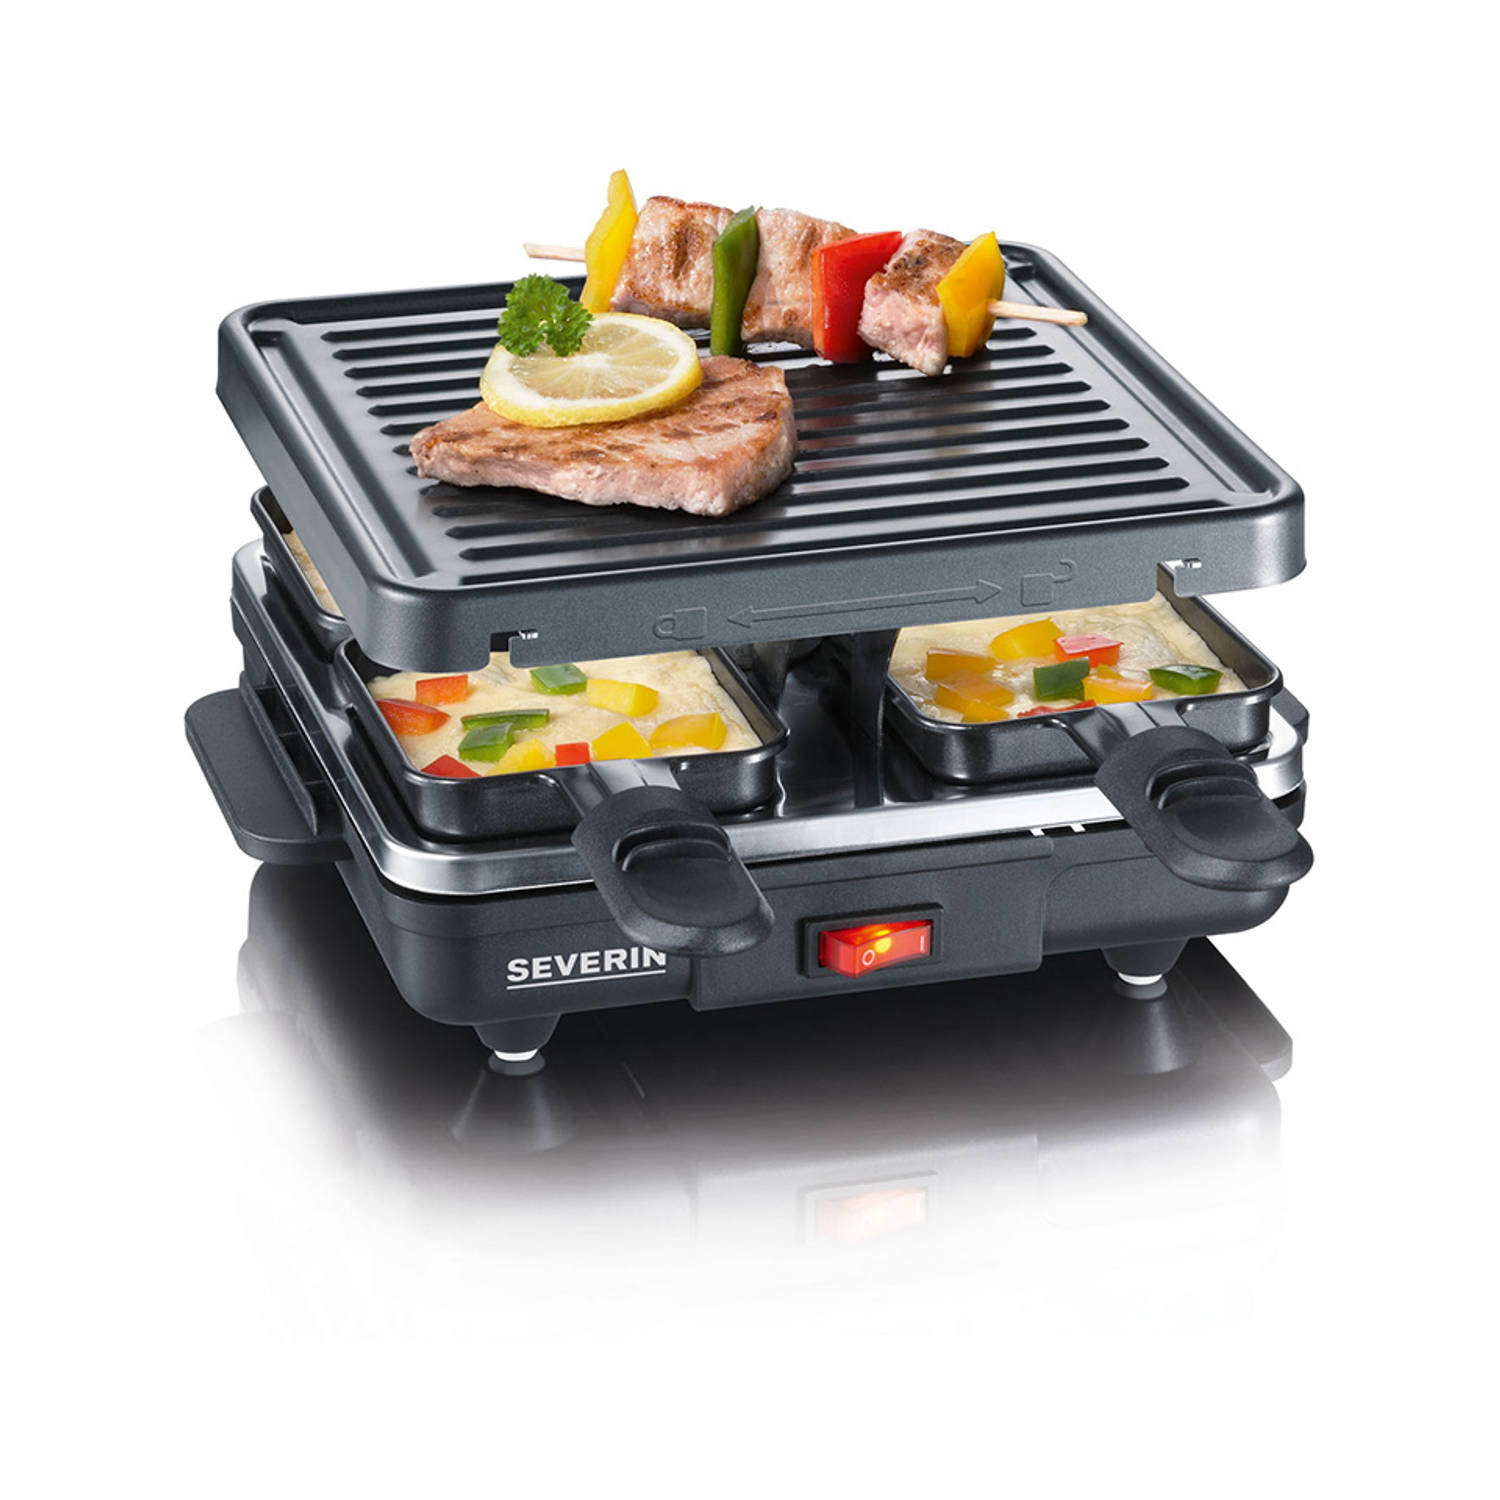 Severin Party Raclettegrill RG 2686